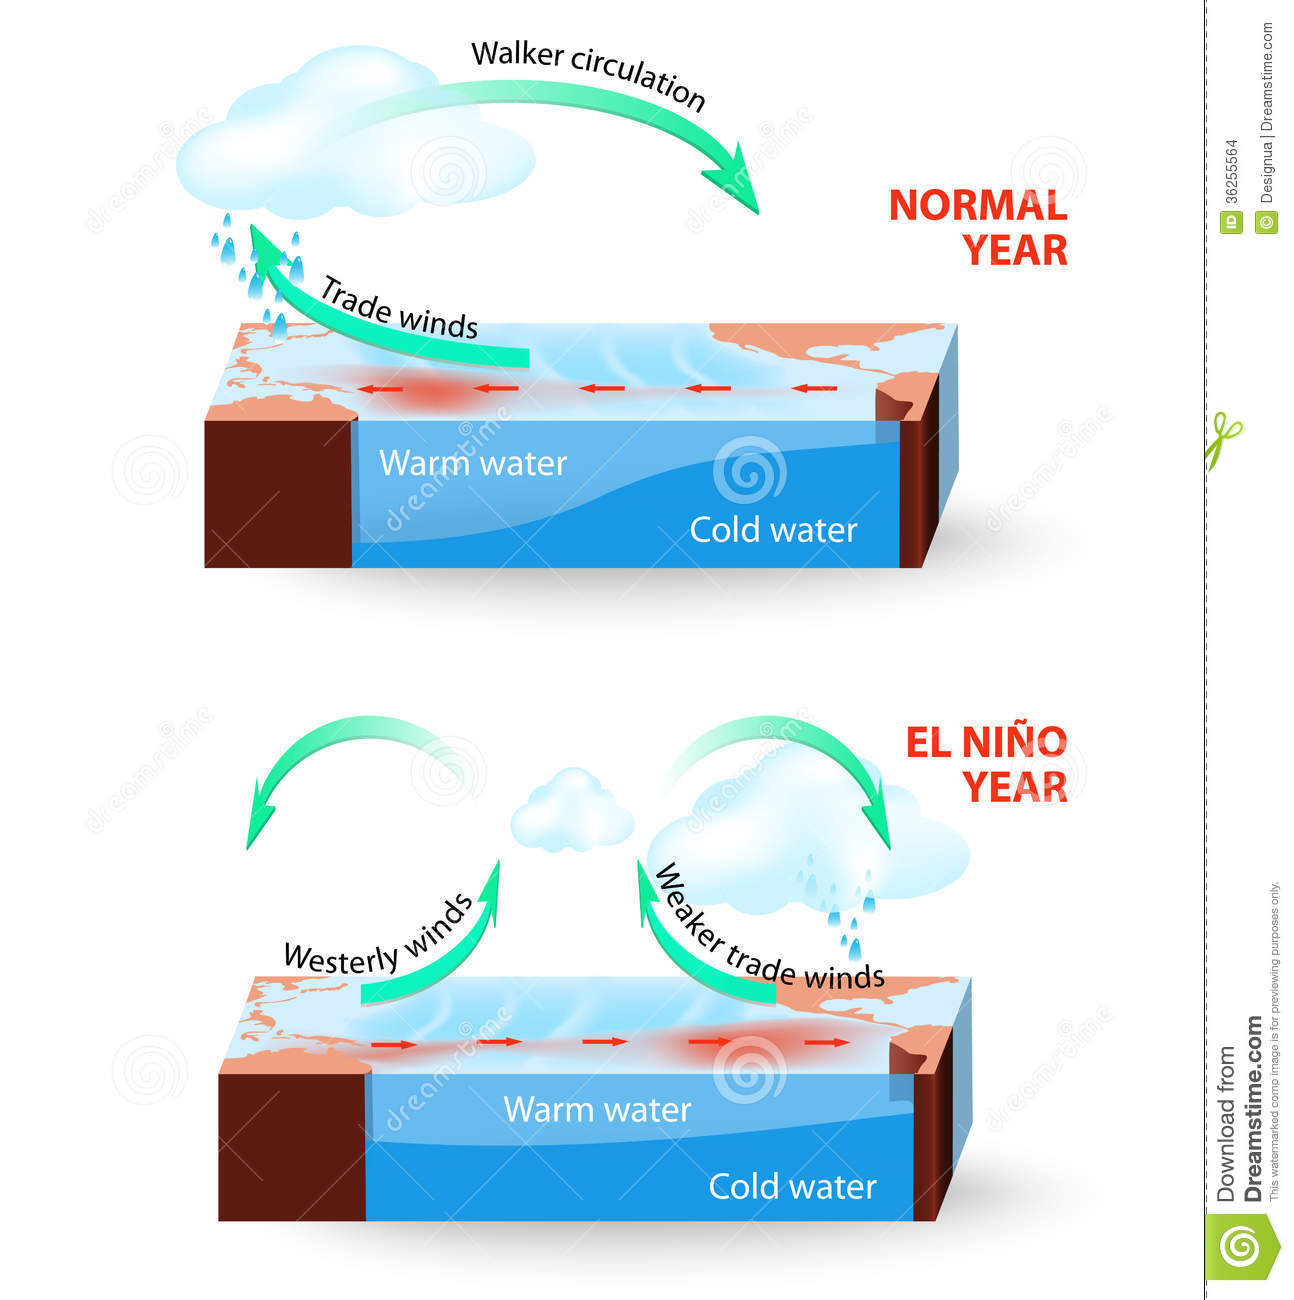 vector infographic cross section of el nino south stock vectorel nino southern oscillation (enso) is a global phenomenon in ocean and atmosphere for an unknown reason el nino events occur irregularly at intervals once